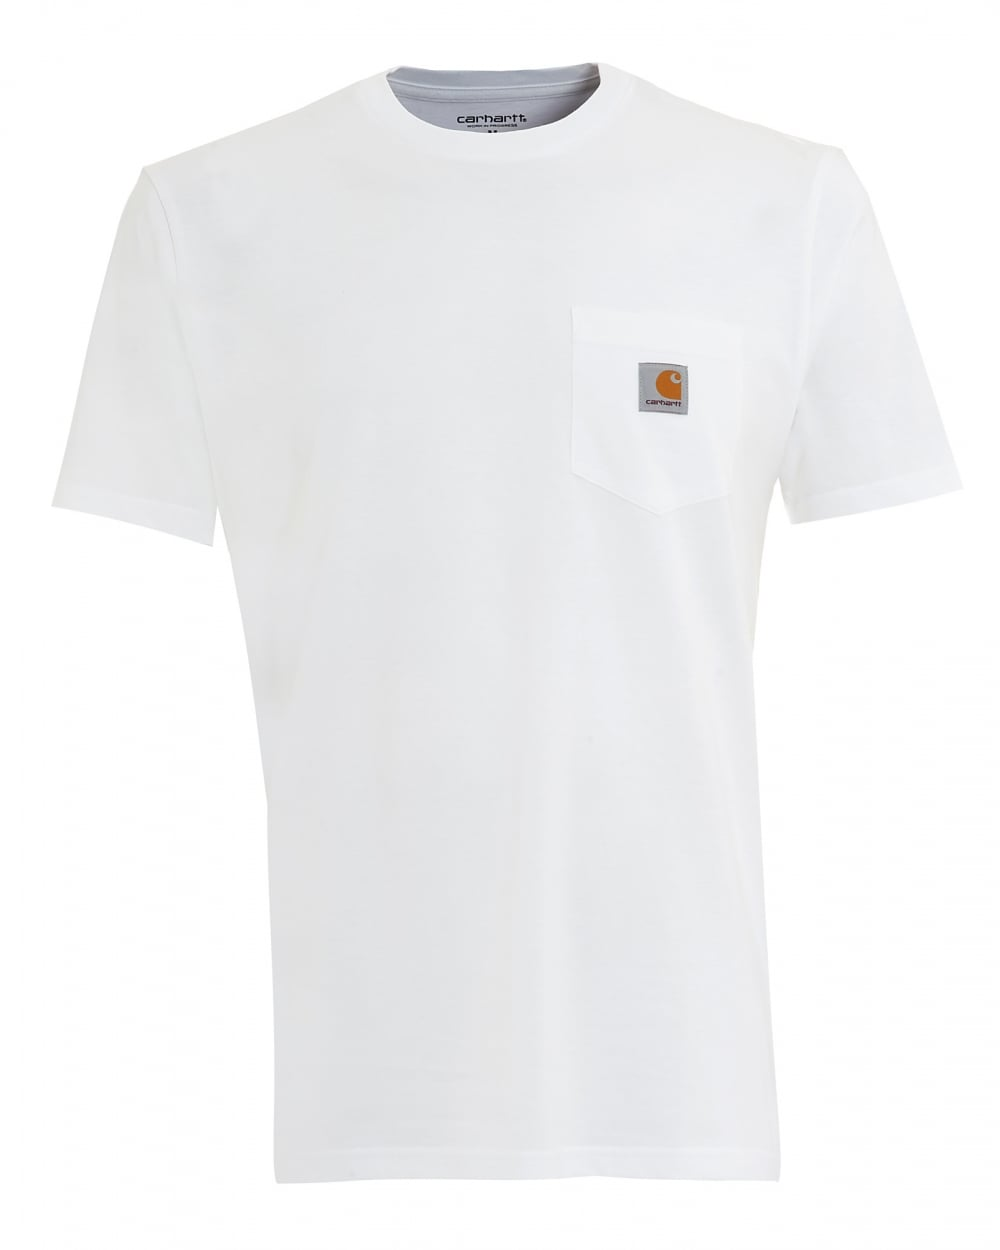 Fabulous Carhartt Mens T-Shirt, Pocket Logo White Tee HK72